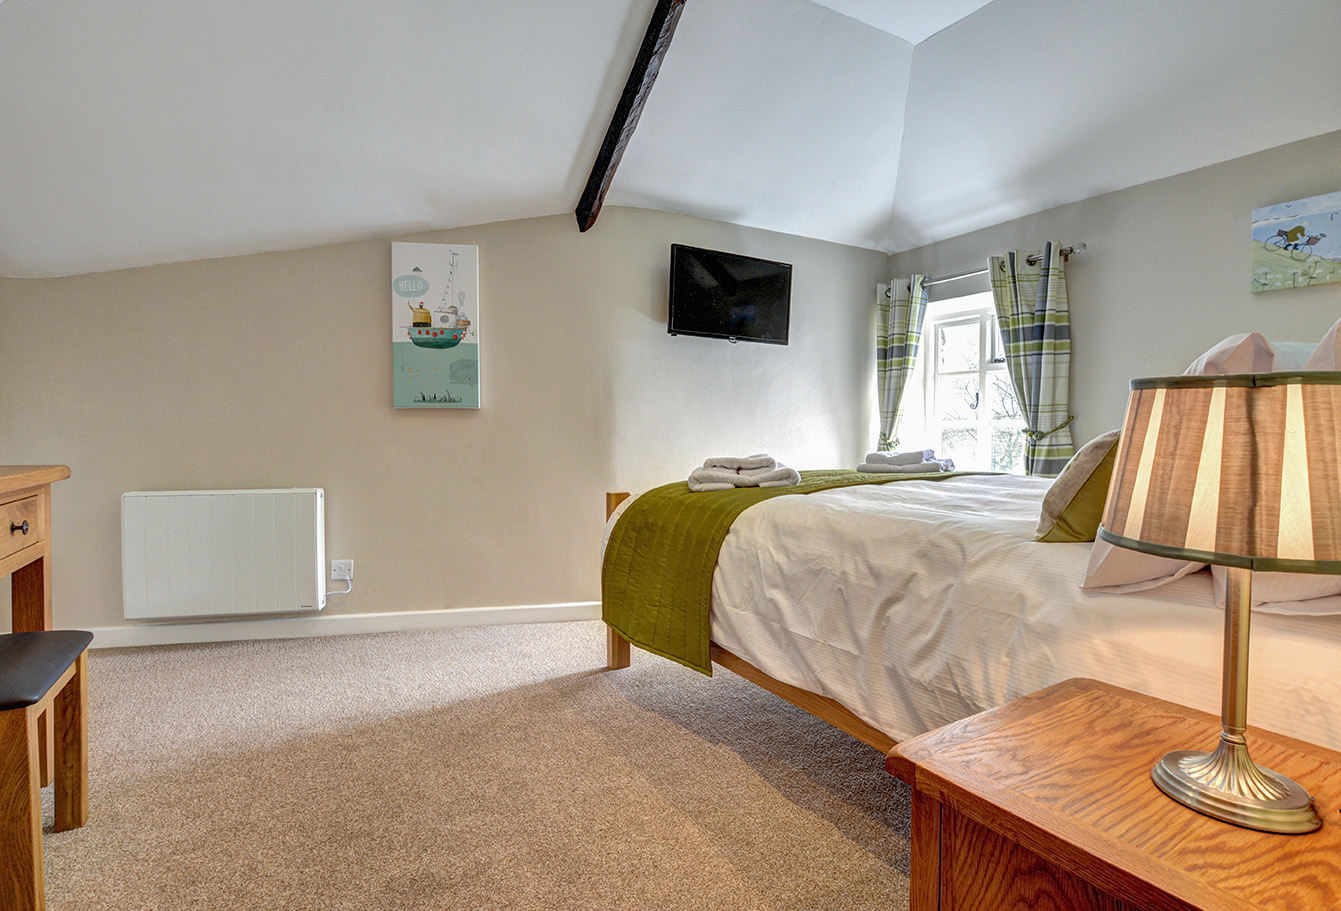 The second bedroom of Otterbridge luxury self catering converted barn holiday cottage at Penrose Burden in North Cornwall02.jpg